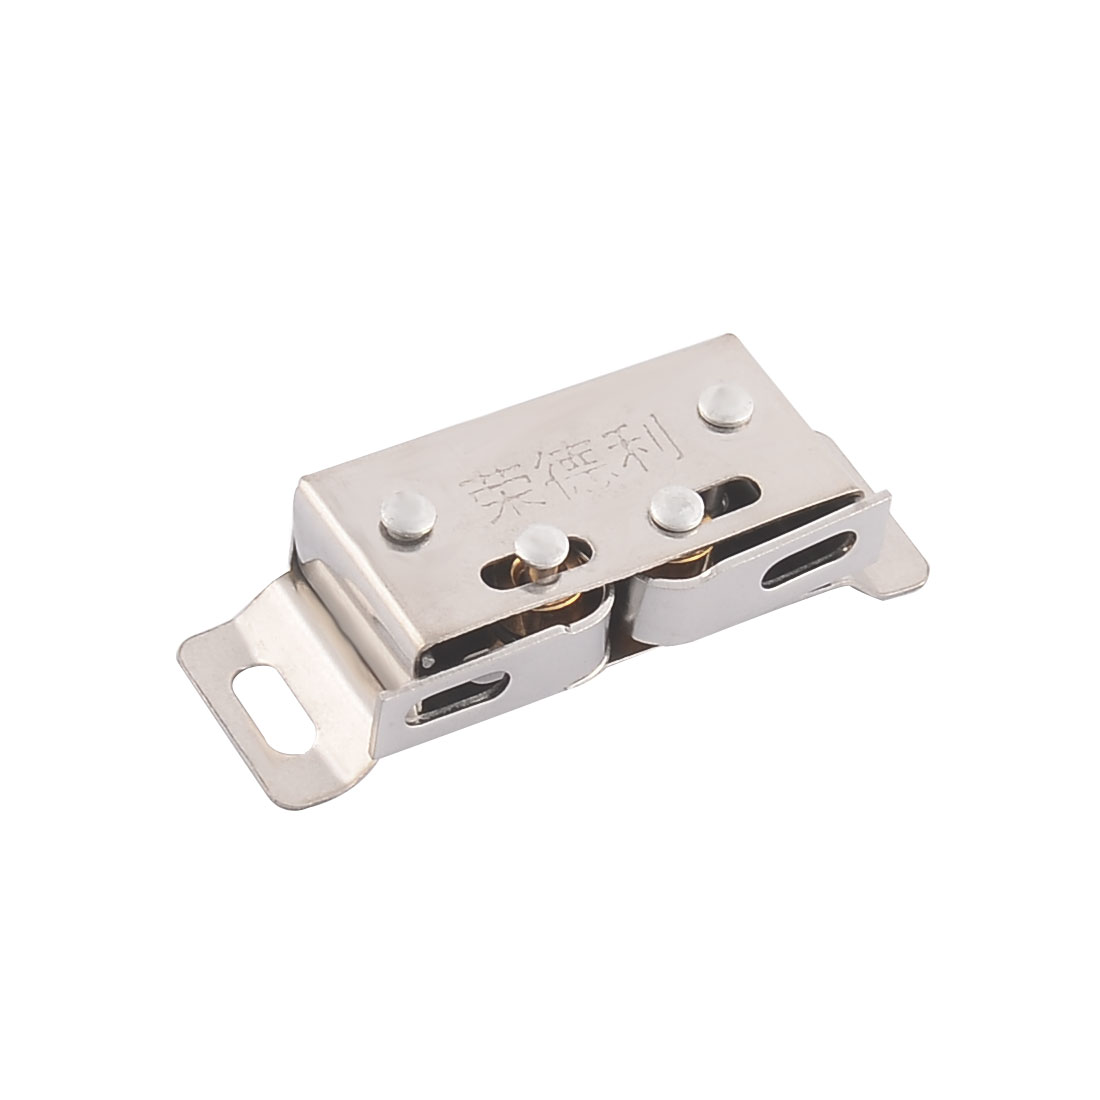 Drawer Cupboard Door 5cm Long Stainless Steel Double Ball Catch Latch